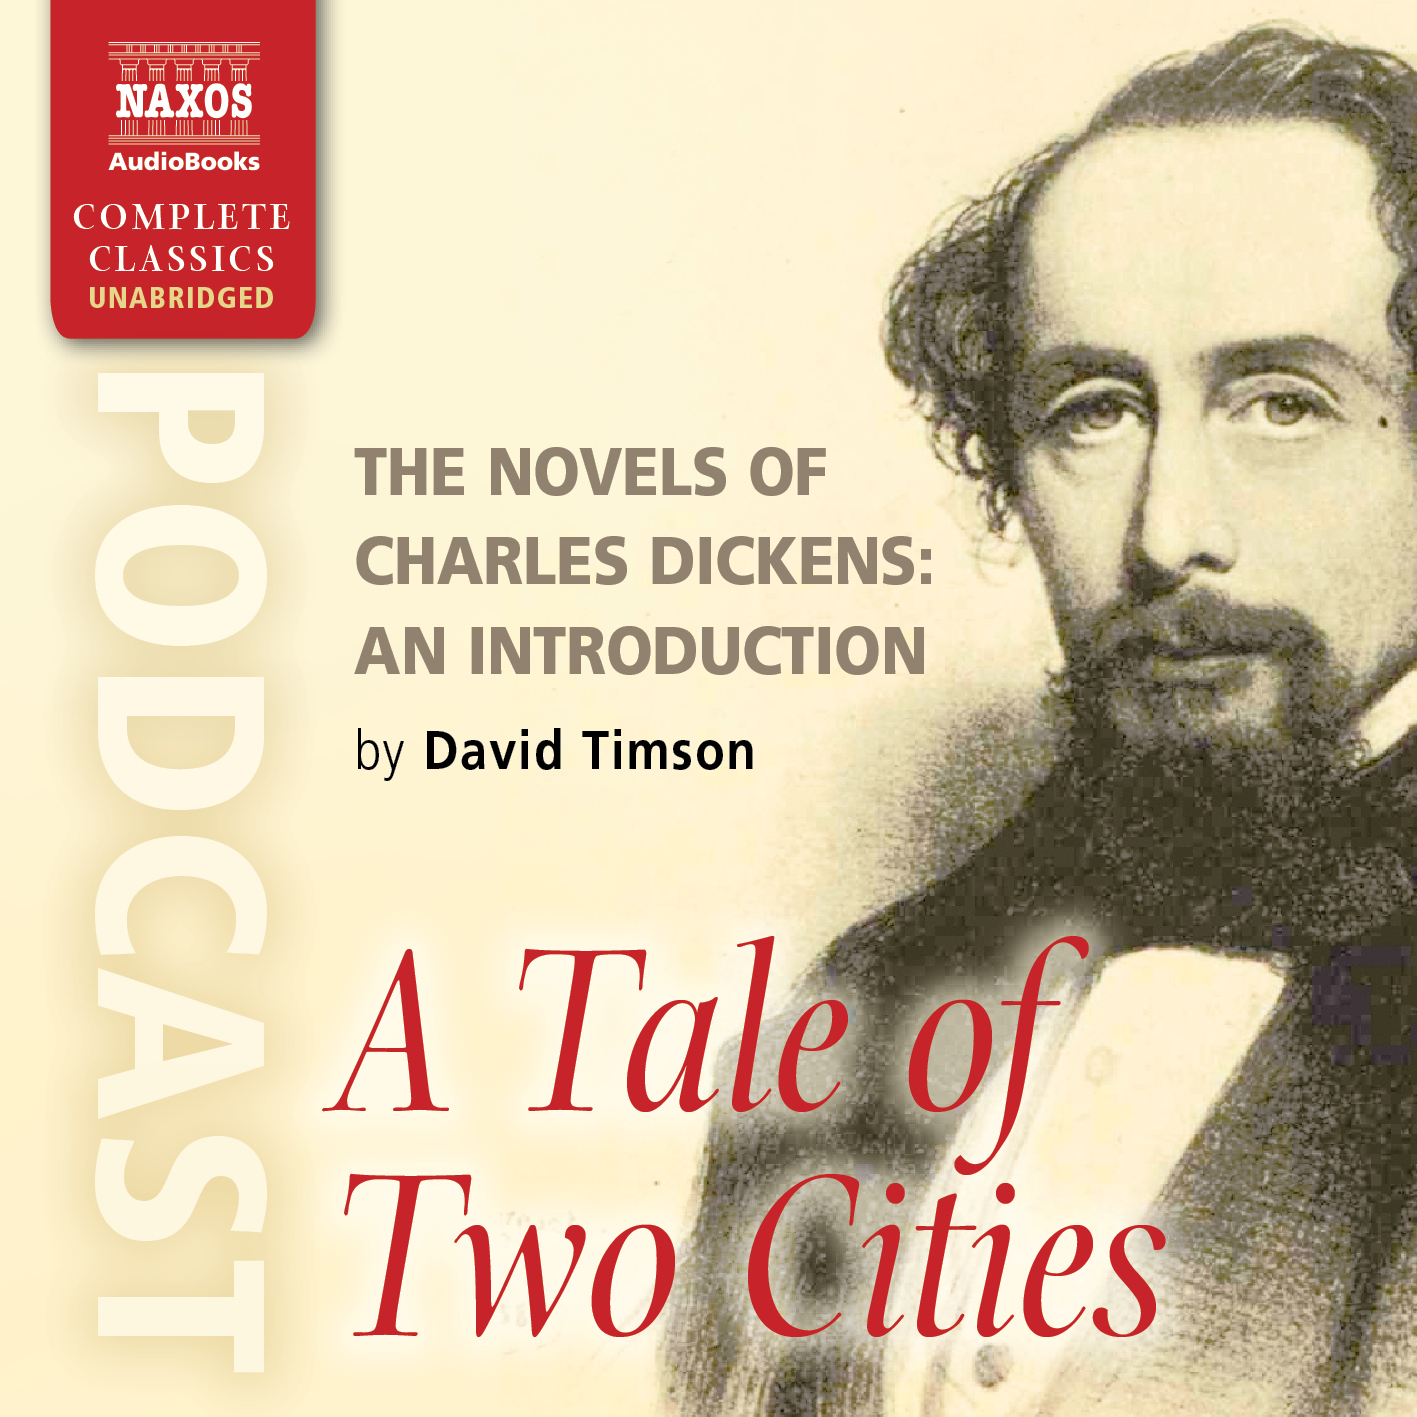 https://naxosaudiobooks.com/wp-content/uploads/2019/08/NA0384_A_Tale_of_Two_Cities_Podcast.jpg